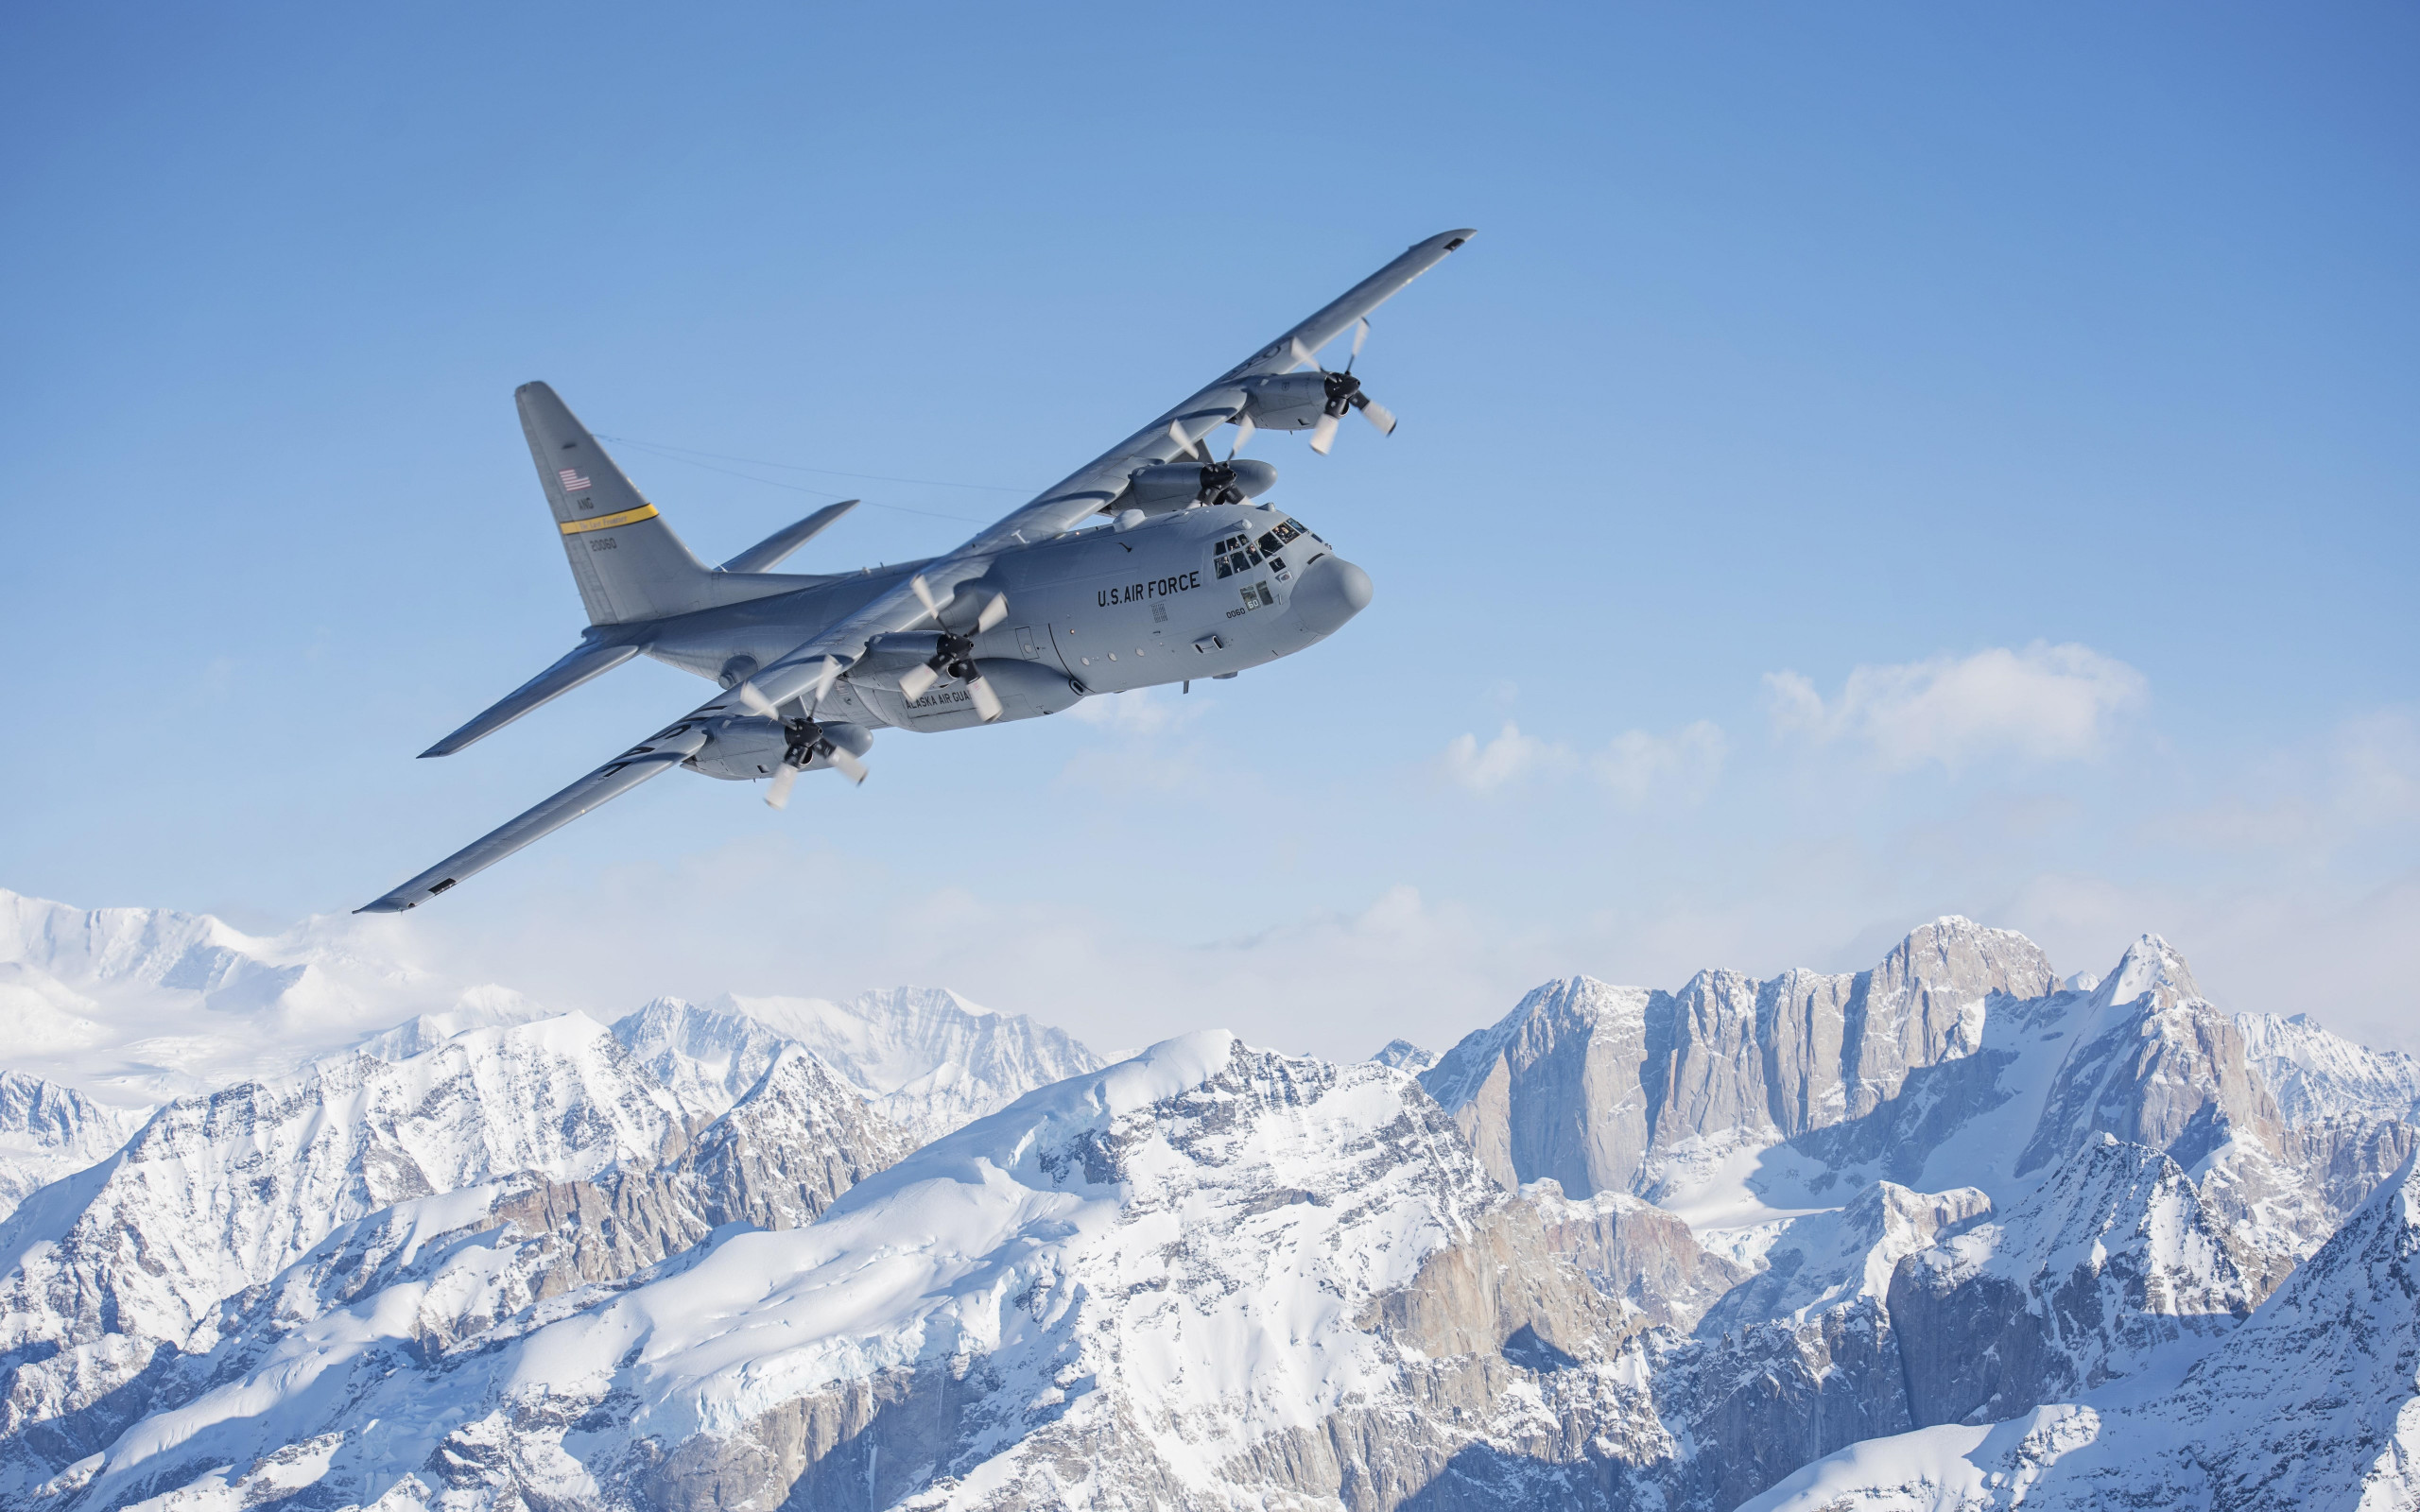 Hercules Aircraft wallpaper 2560x1600